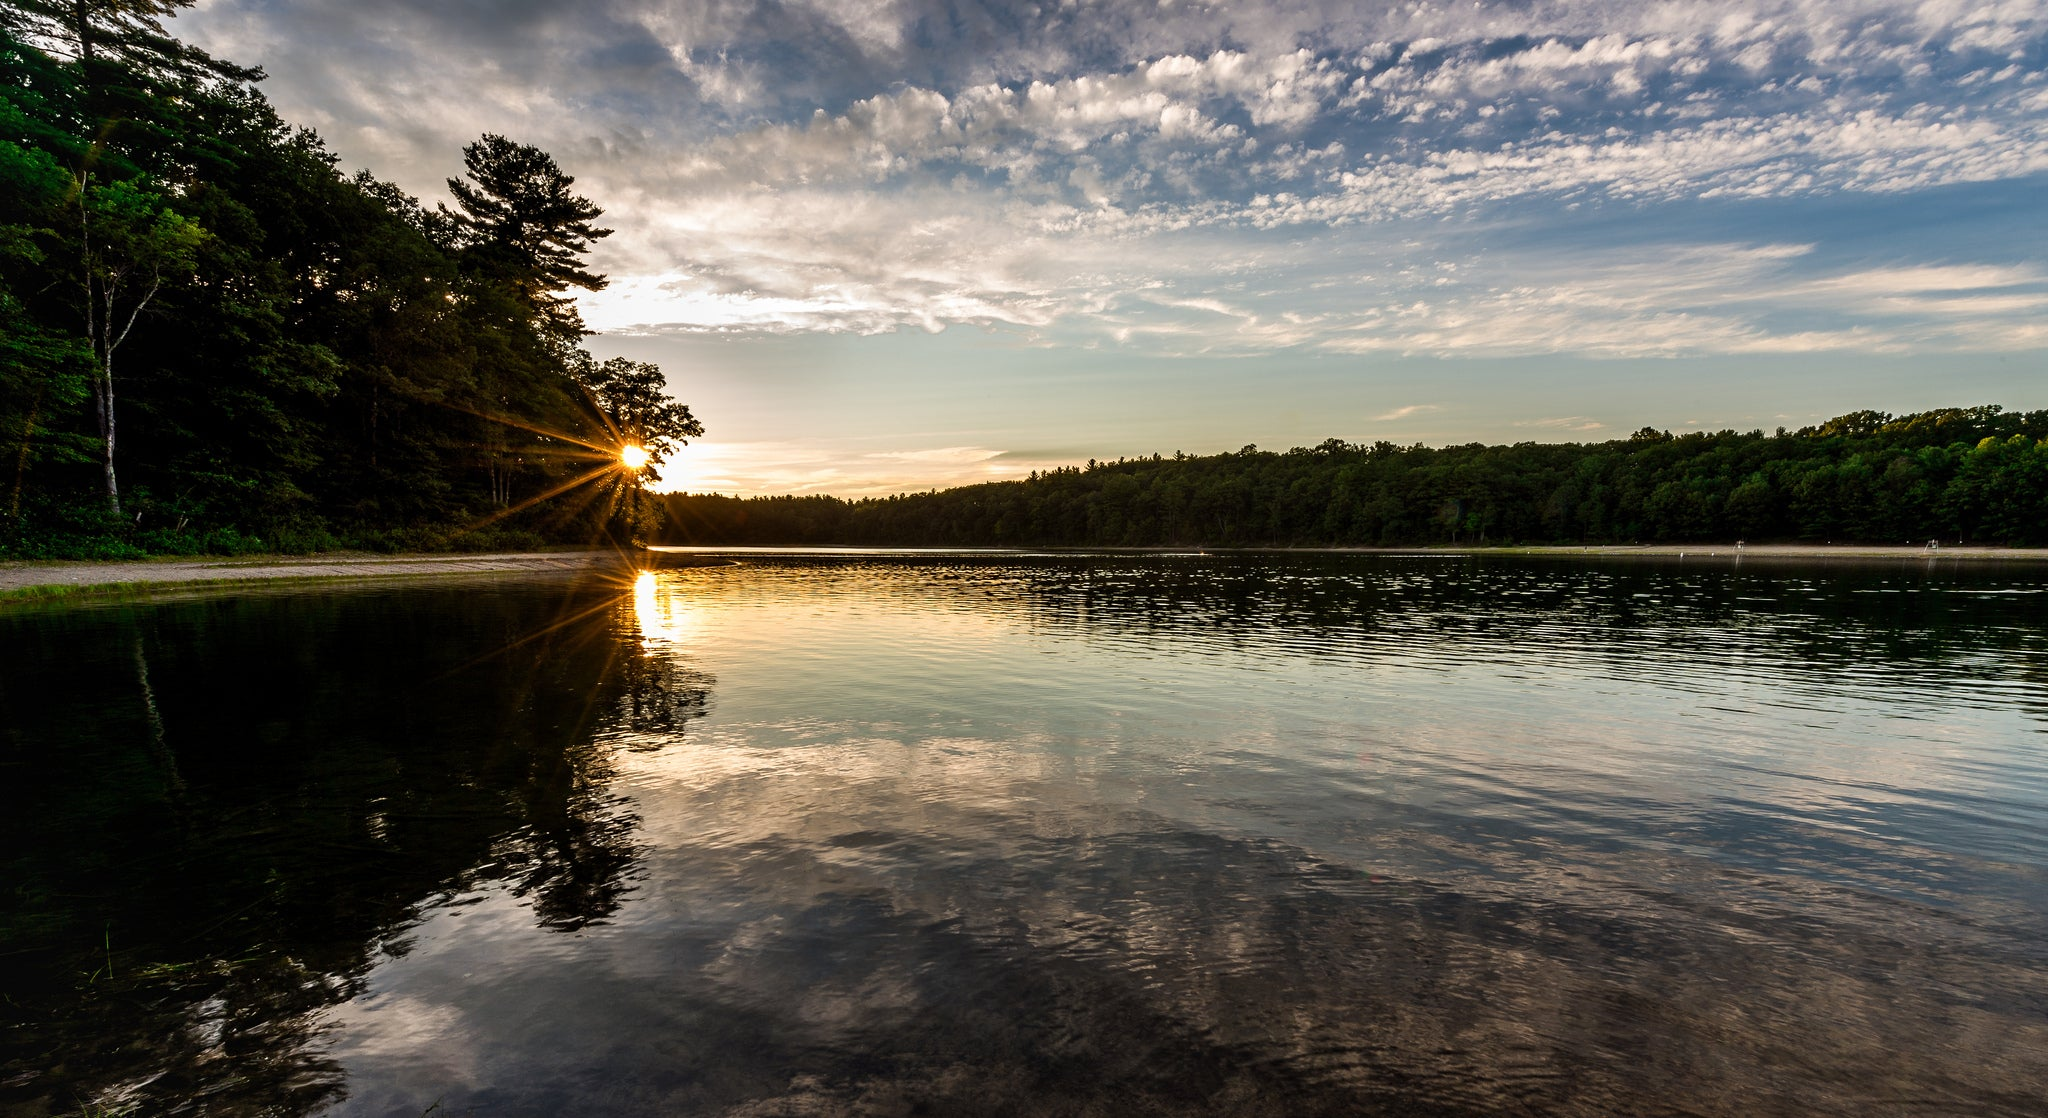 We're ruining Walden Pond just like we ruin everything beautiful in this world